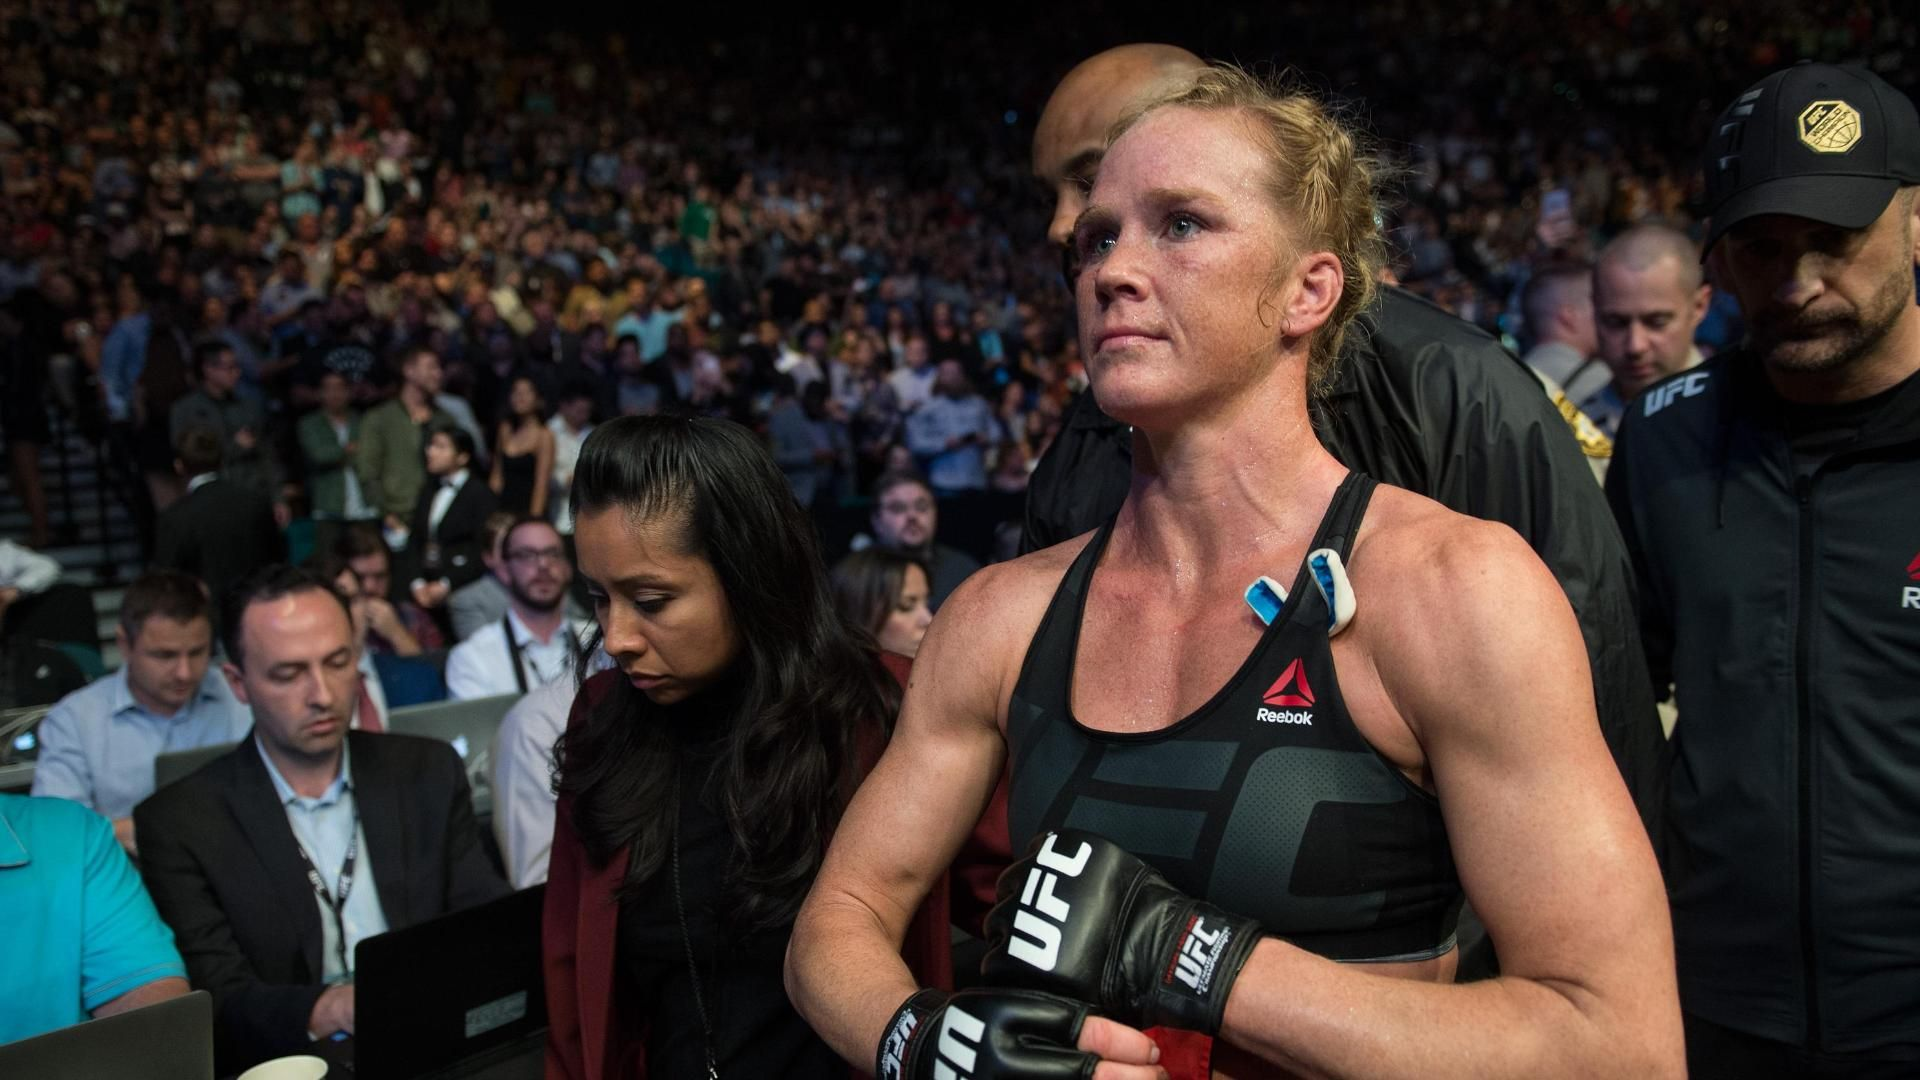 Dana White: Holm's people let her down